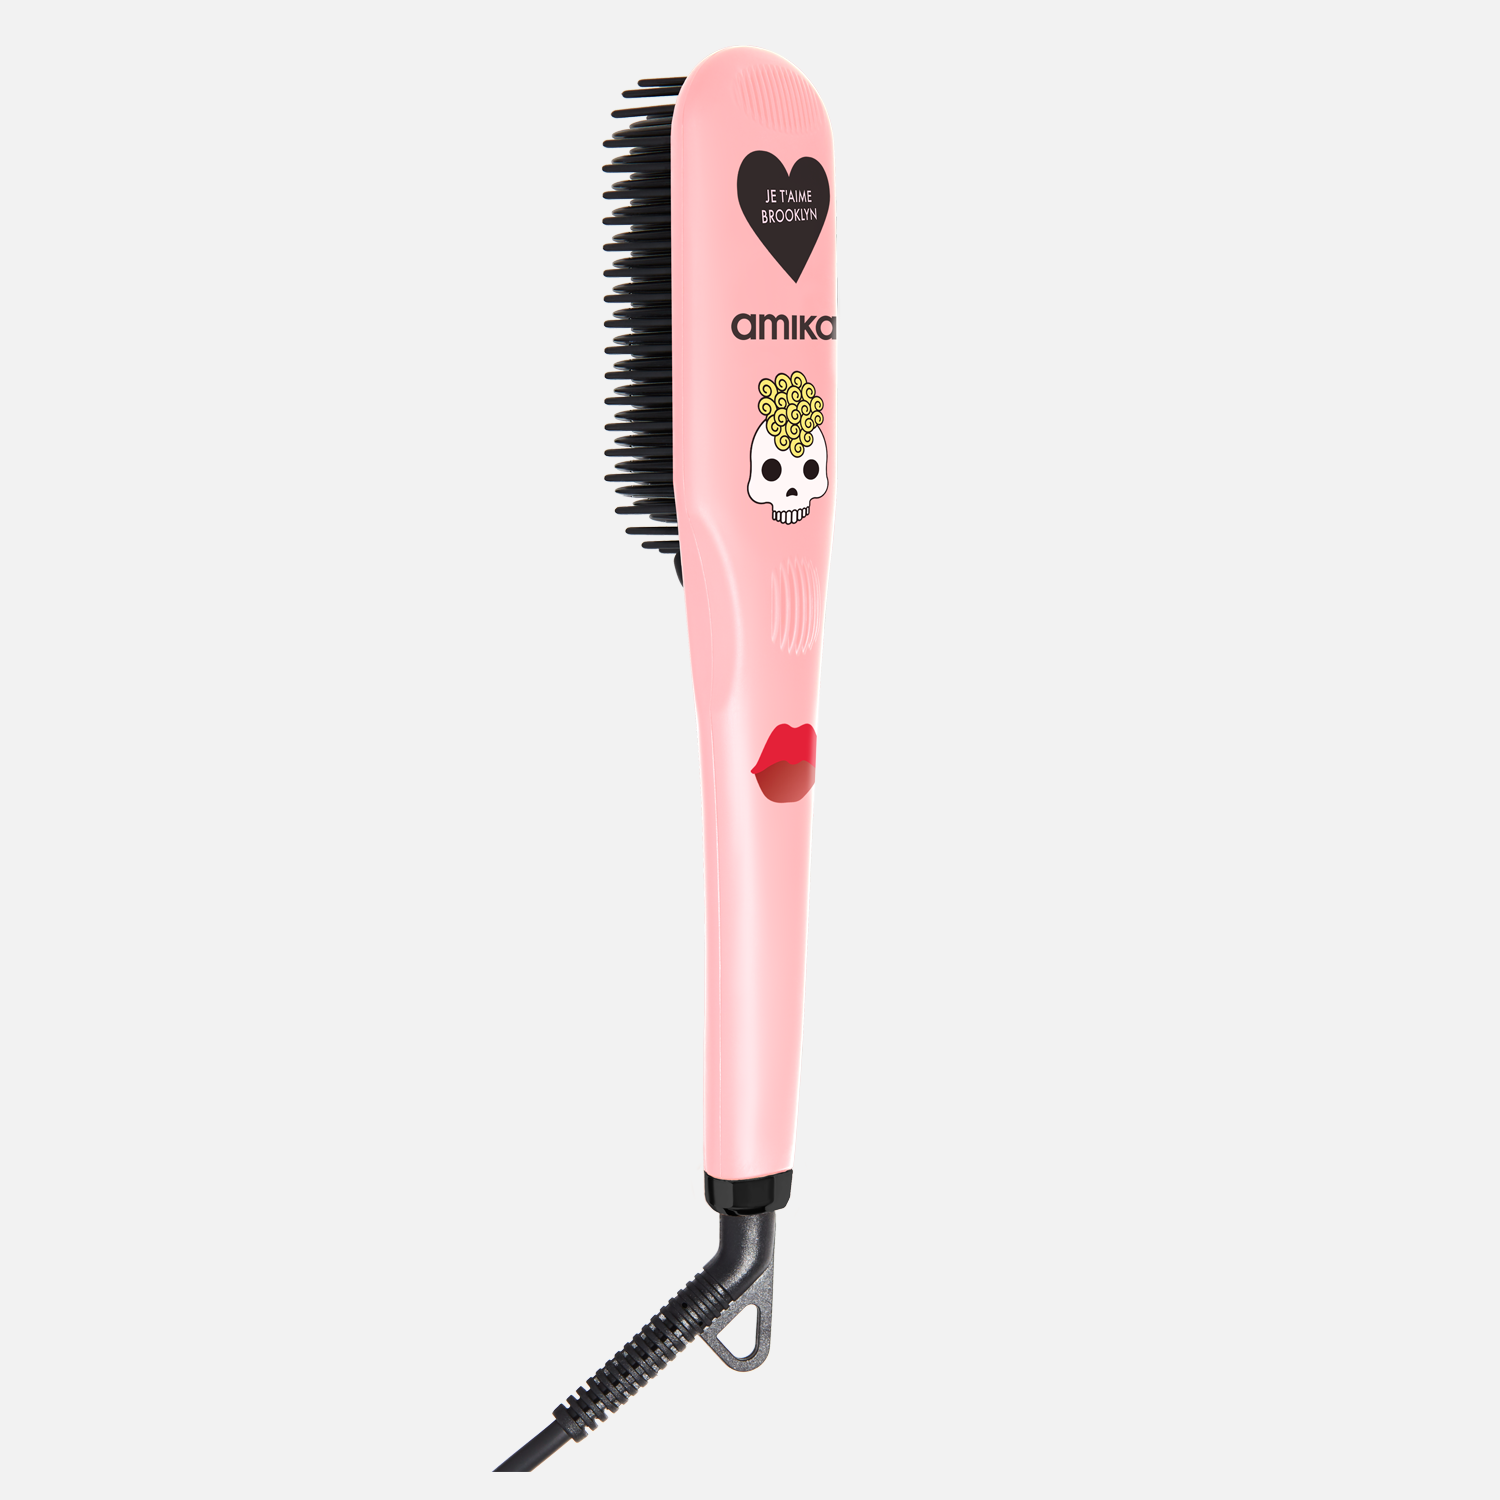 polished perfection straightening brush 1.0 | rose quartz - limited edition